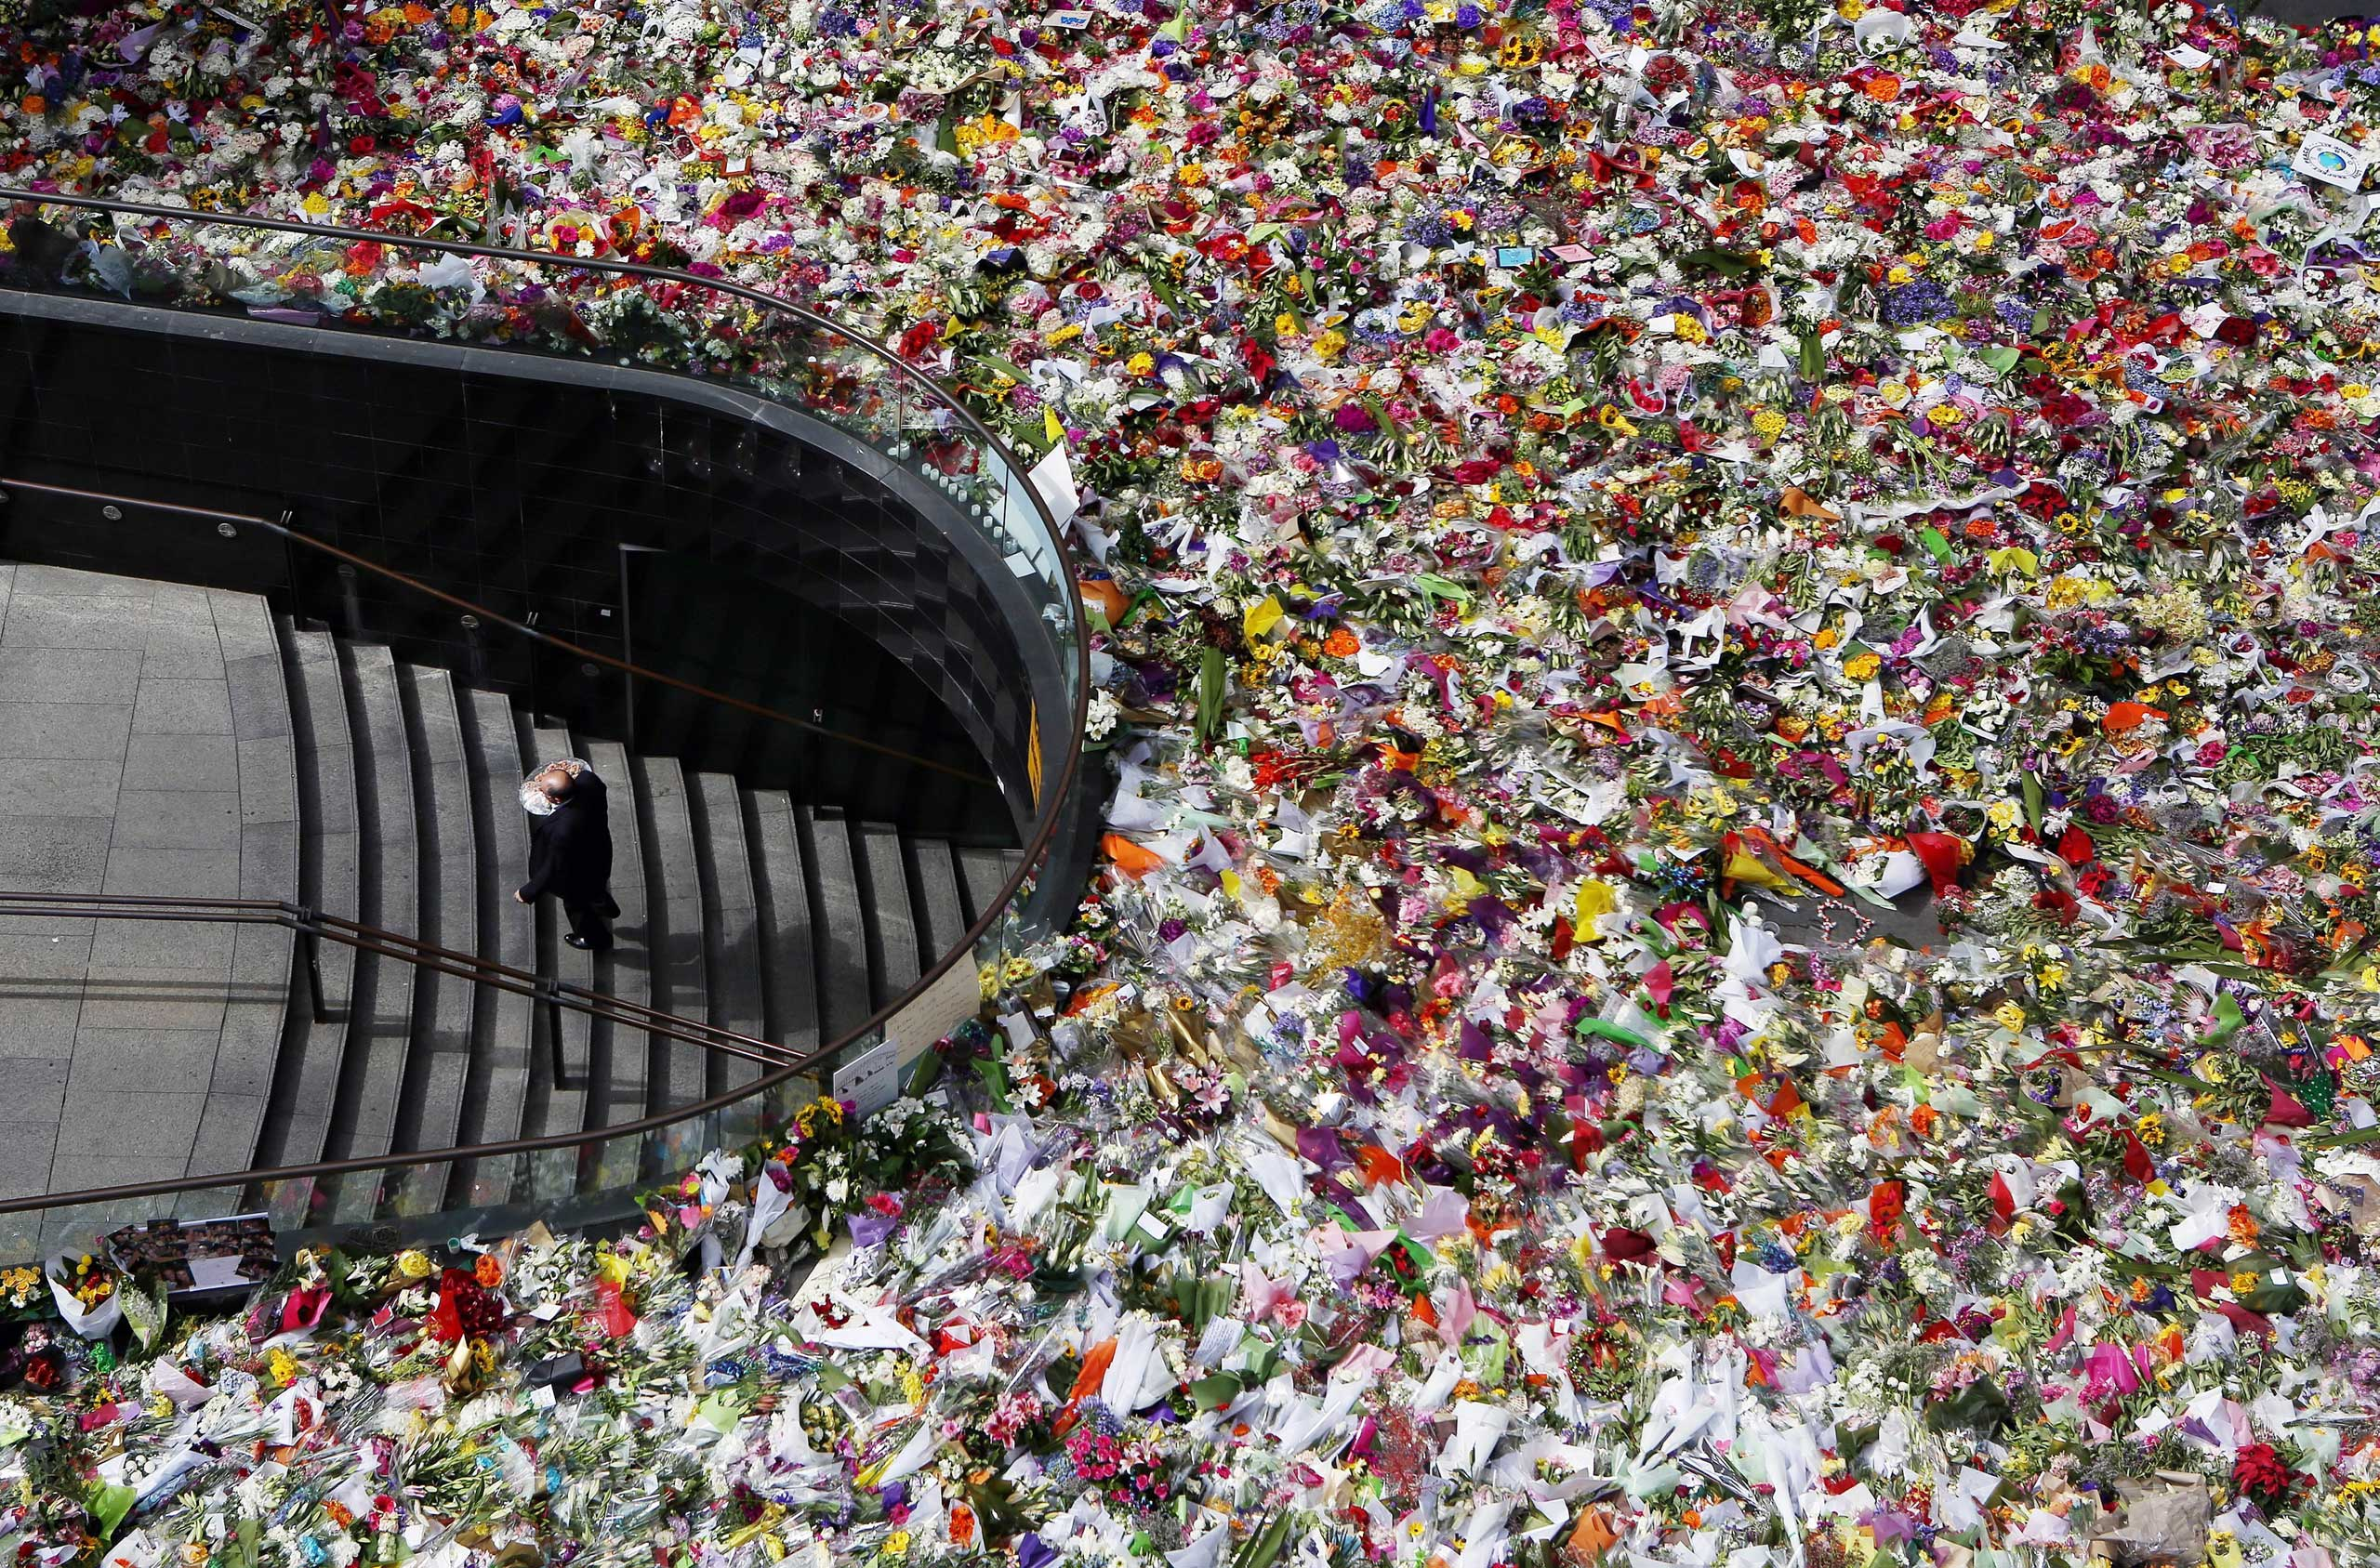 Dec. 18, 2014. A man arrives with a bunch of flowers in Martin Place in Sydney, Australia. Tens of thousands of Sydneysiders have paid tribute to the two victims of the Martin Place siege, barrister Katrina Dawson and cafe manager Tori Johnson.